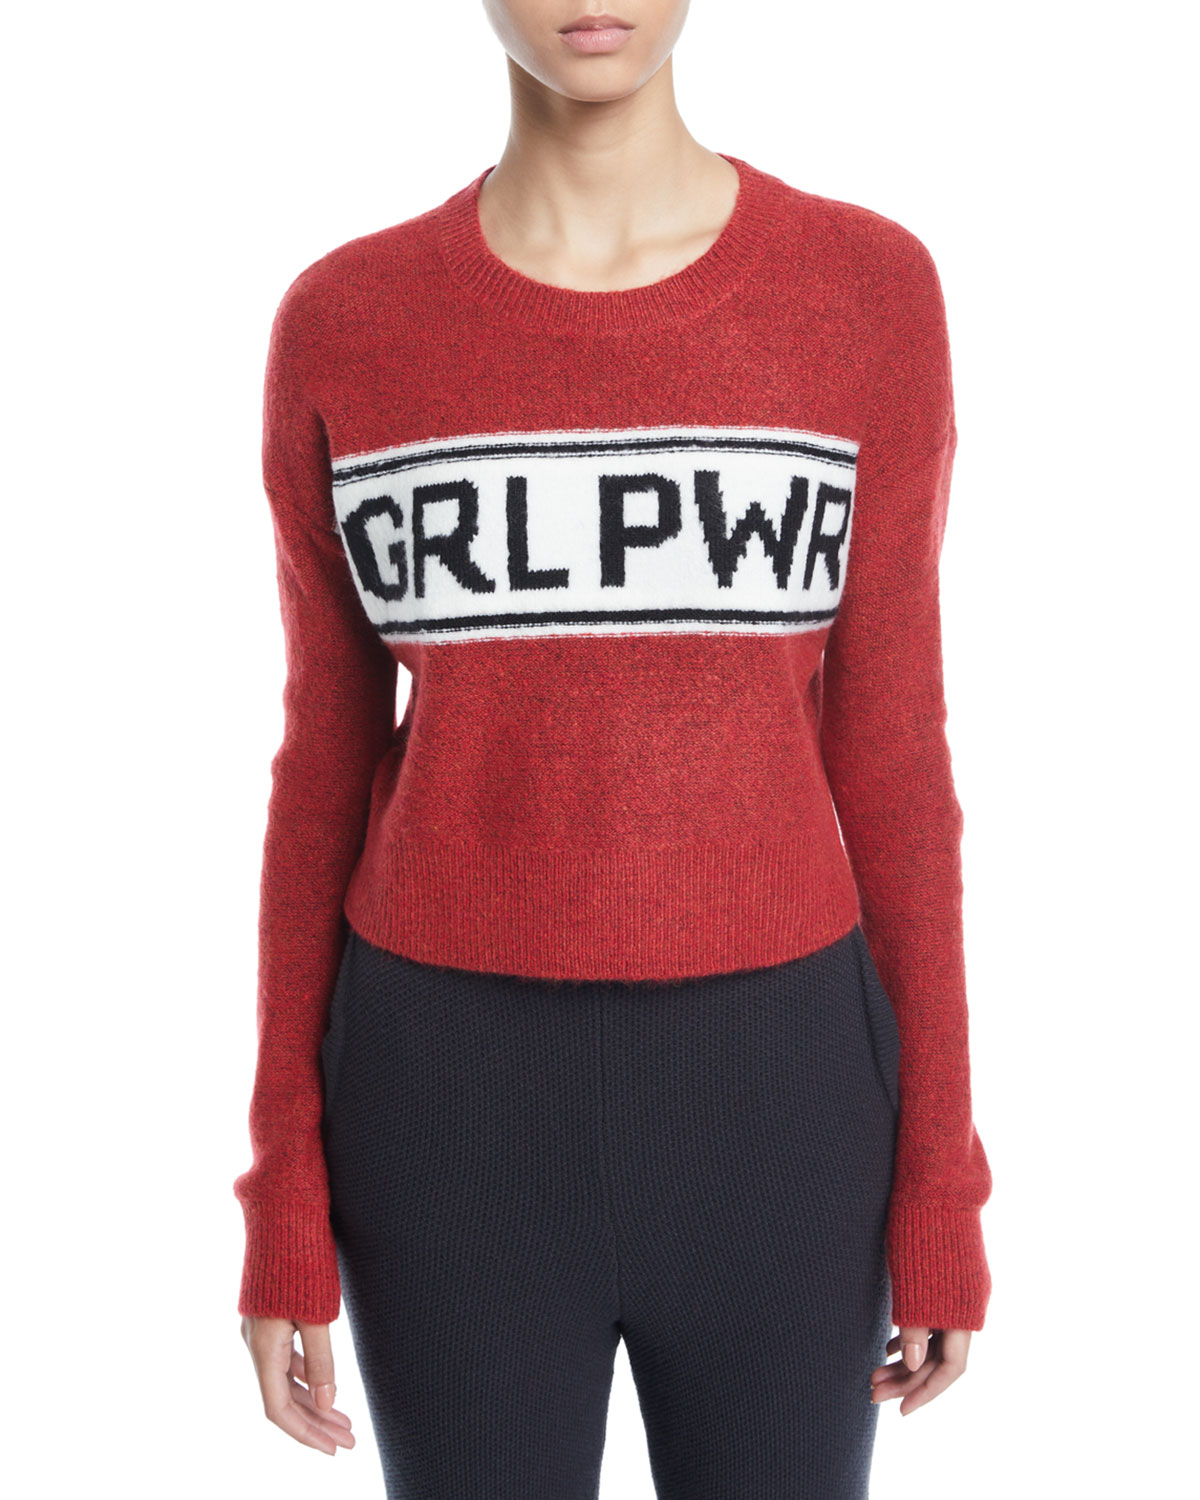 MARLED BY REUNITED Grl Pwr Destroyed Cropped Pullover Sweater in Red